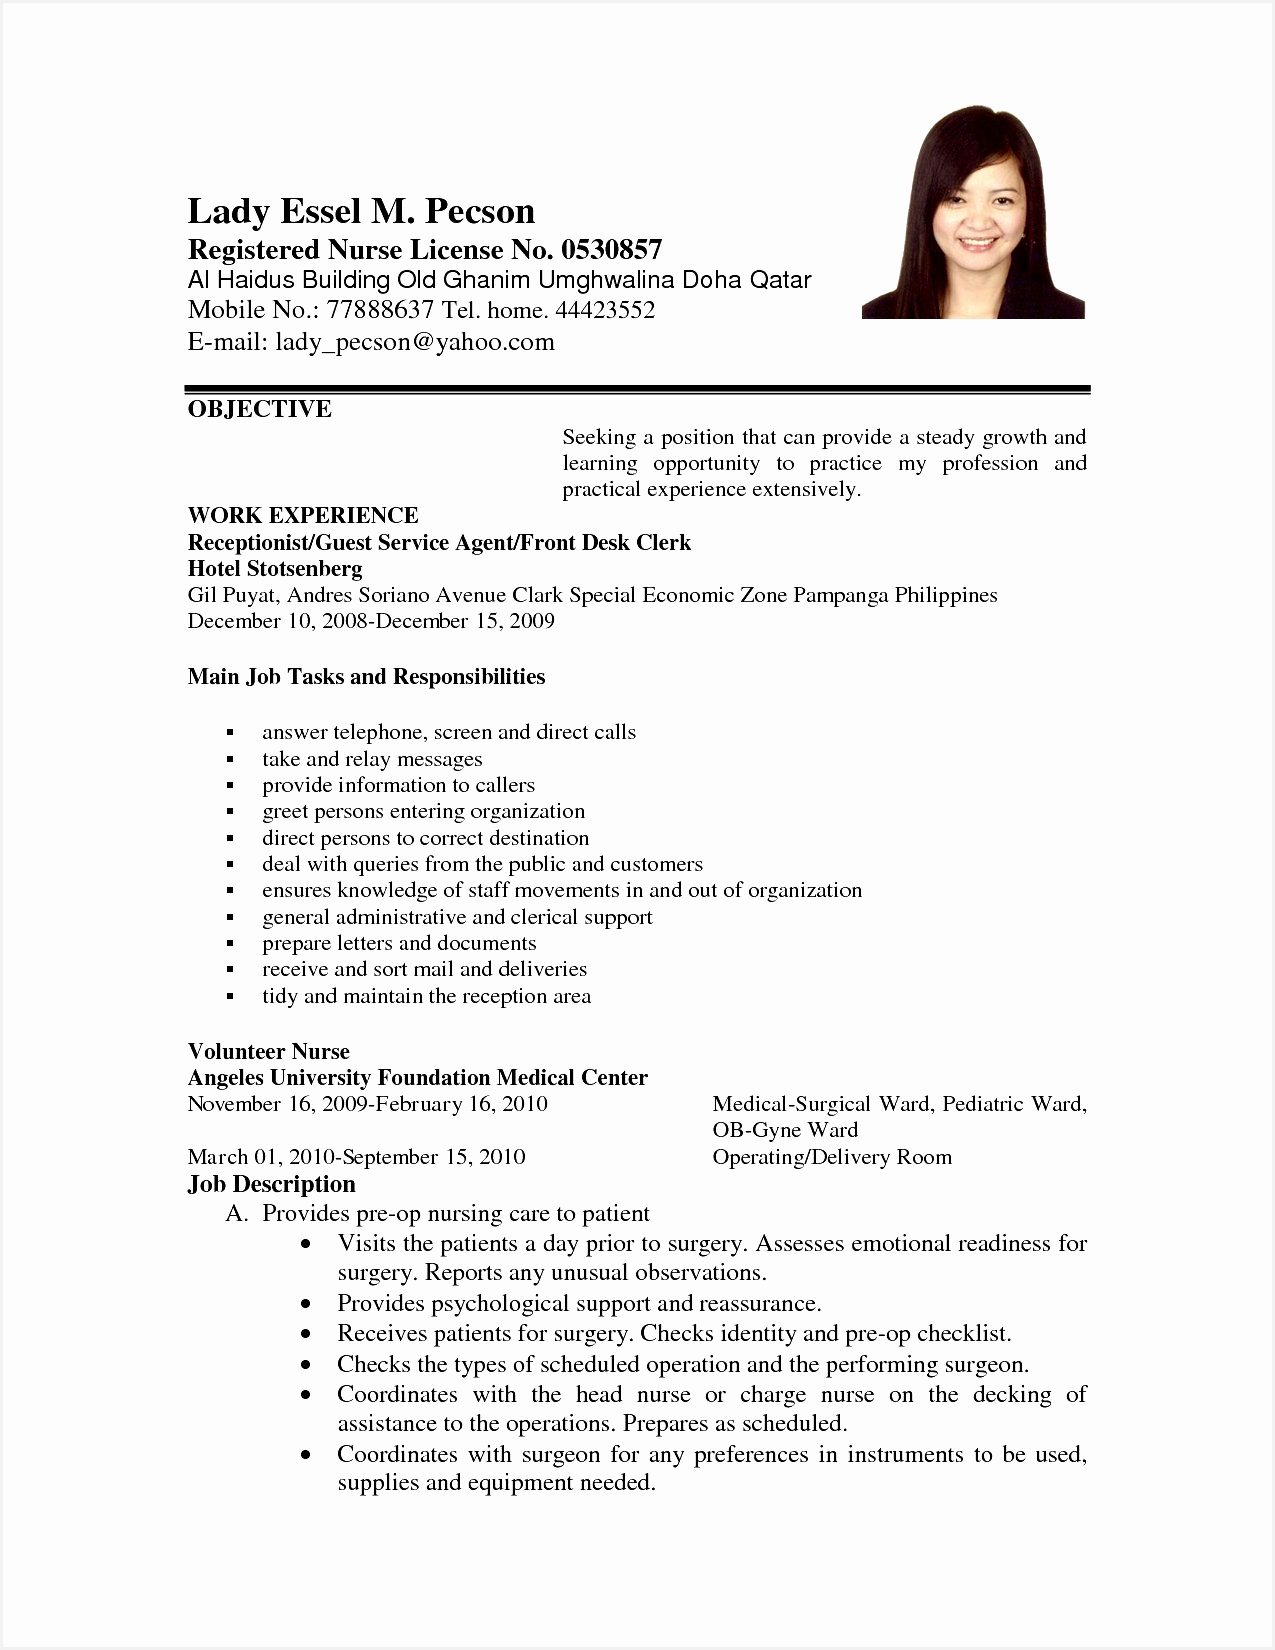 sample of simple resume format lovely i pinimg originals a5 a8 0d a5a80d21b21e036dc0 of sample of simple resume format16501275